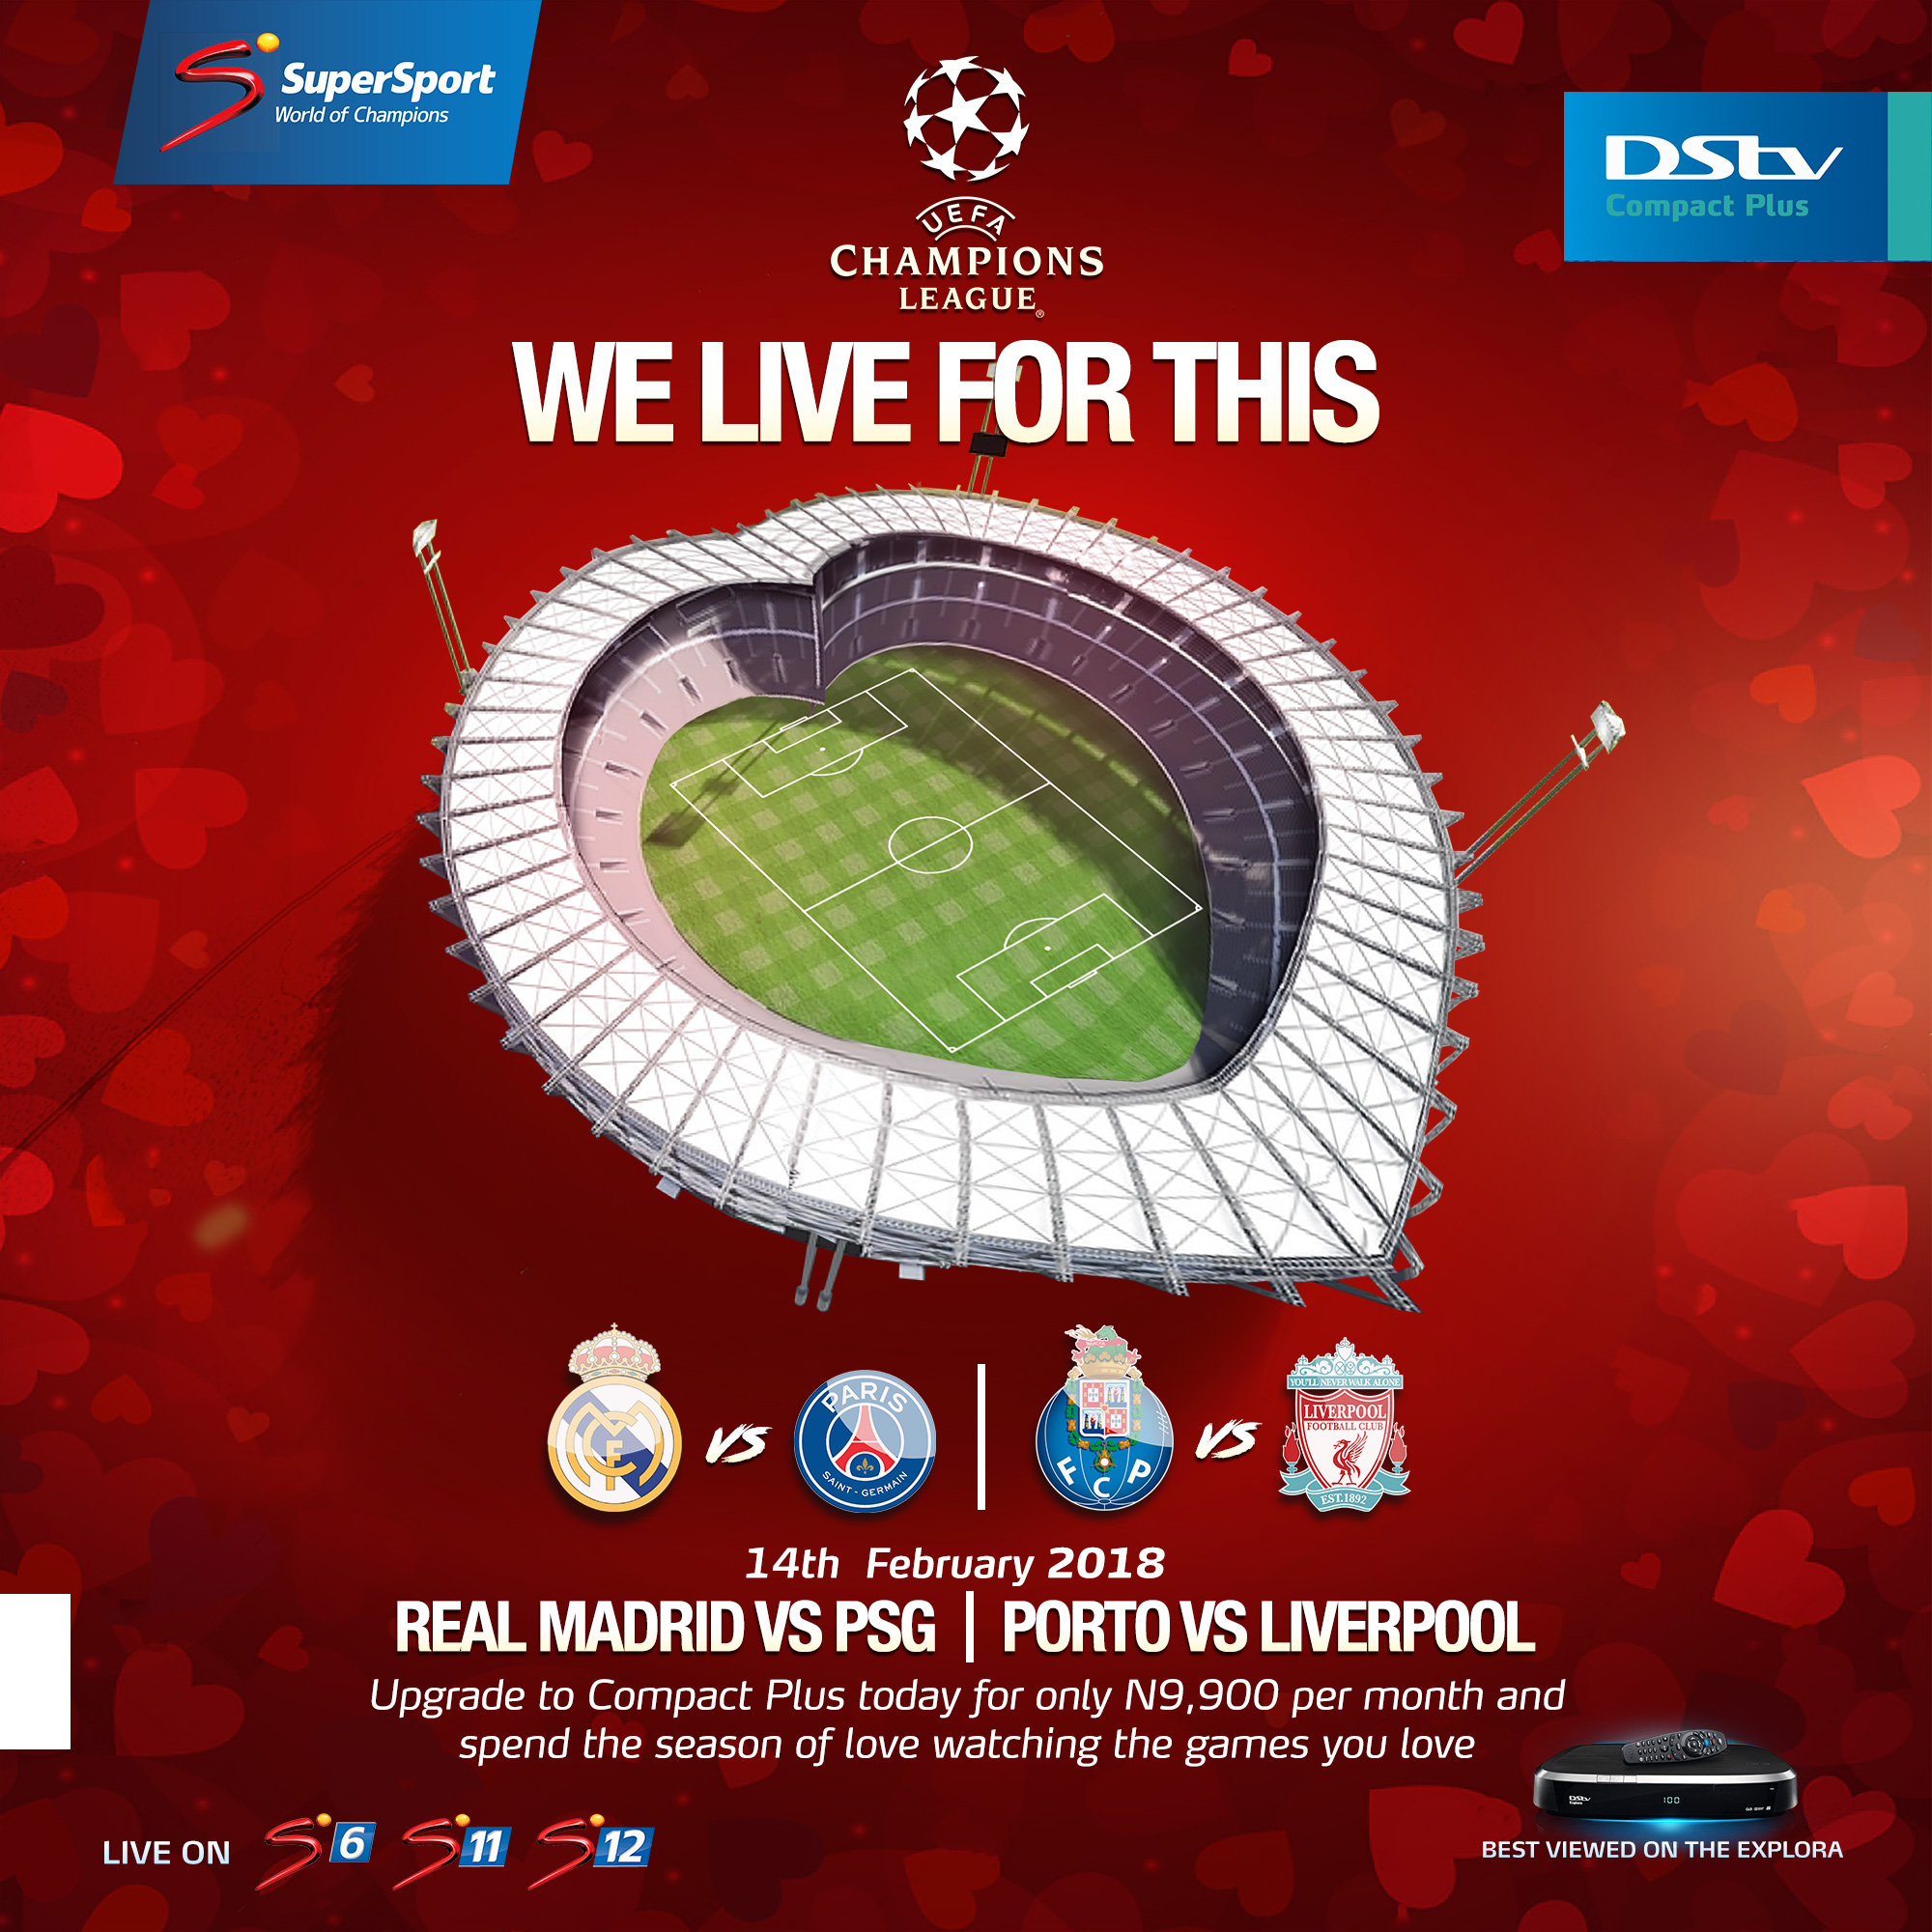 Enjoy The UEFA Champions League Action This Season Of Love